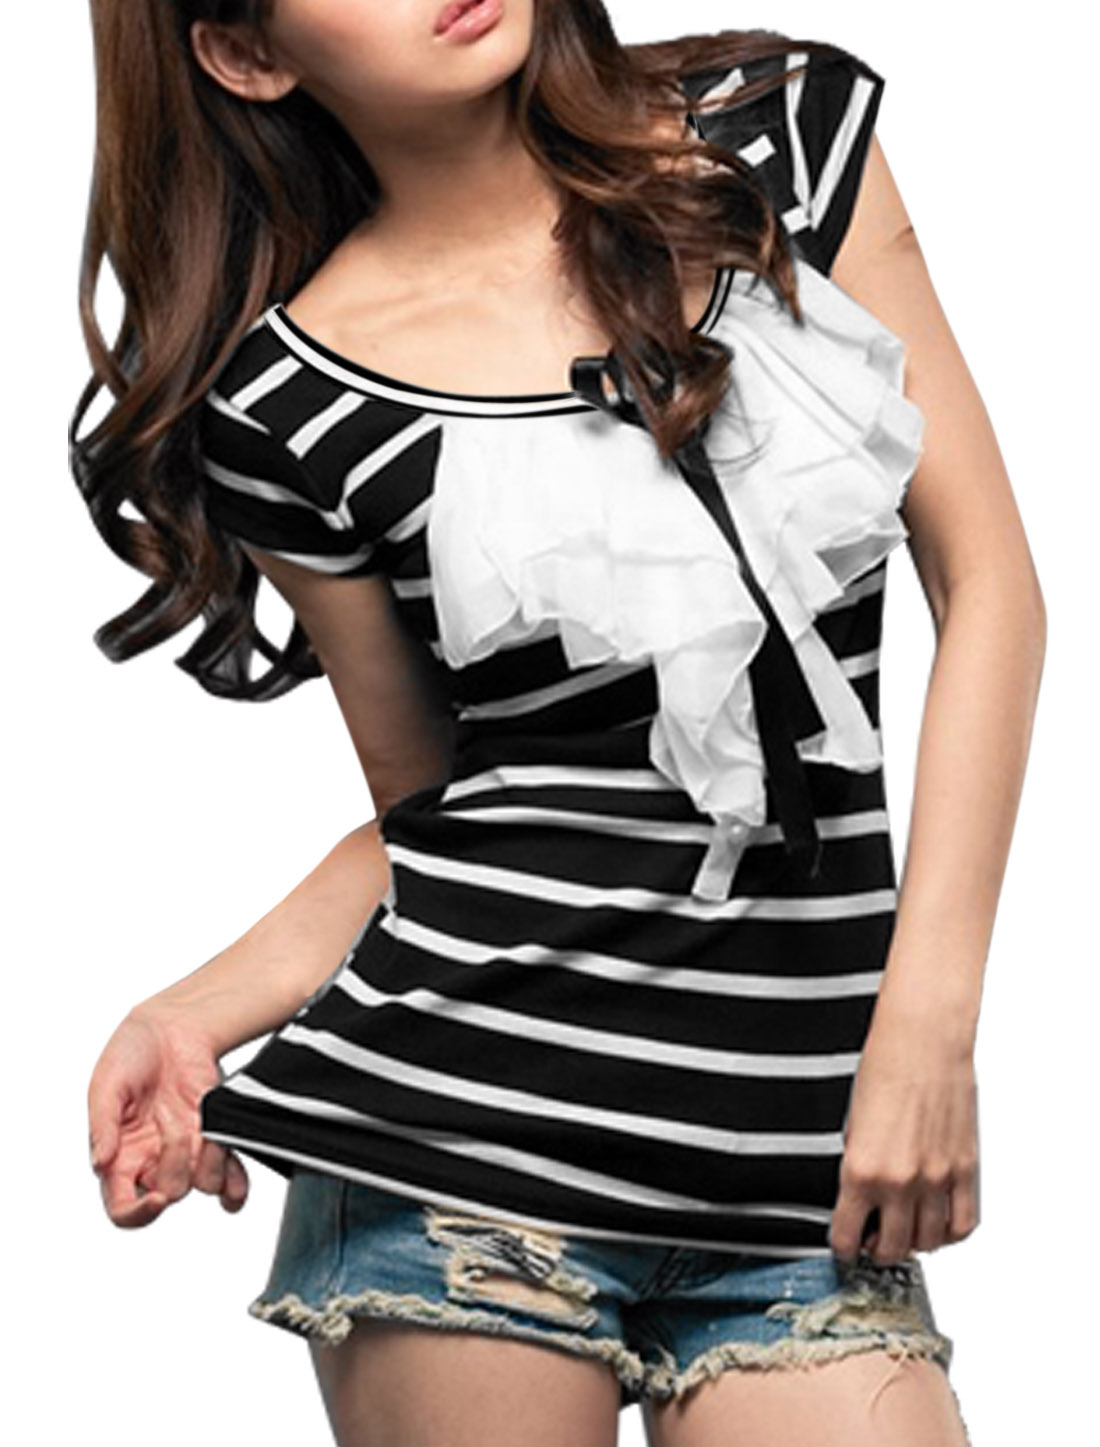 Woman Striped Short Sleeve Ruched Scoop Neck Shirt Black White M